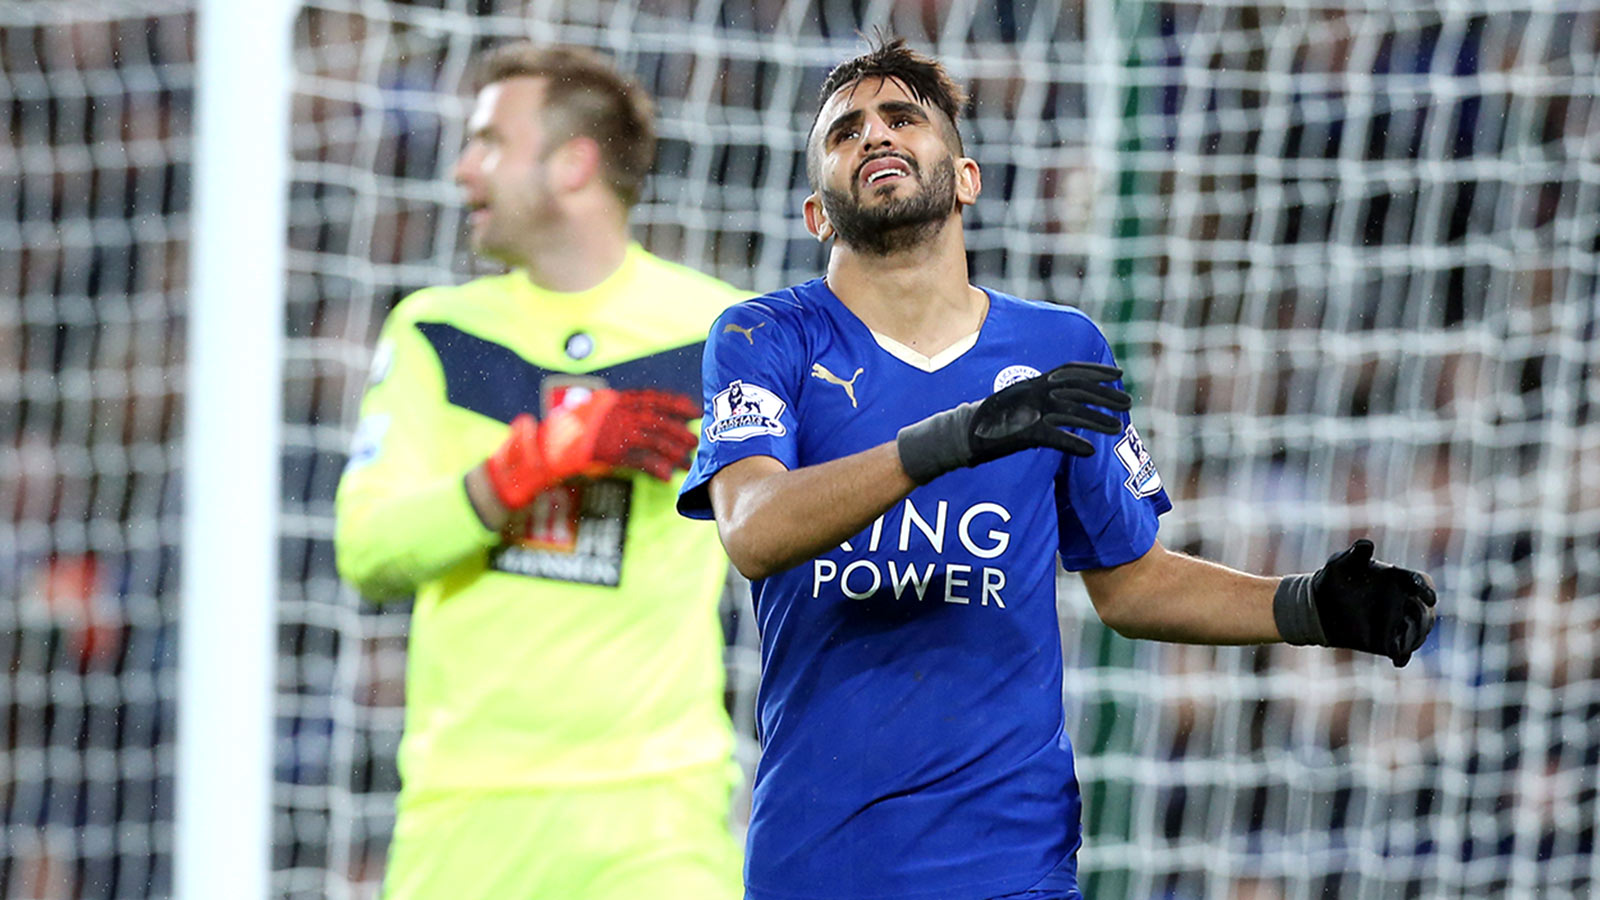 Leicester squander PK chance in bitter draw vs. Bournemouth